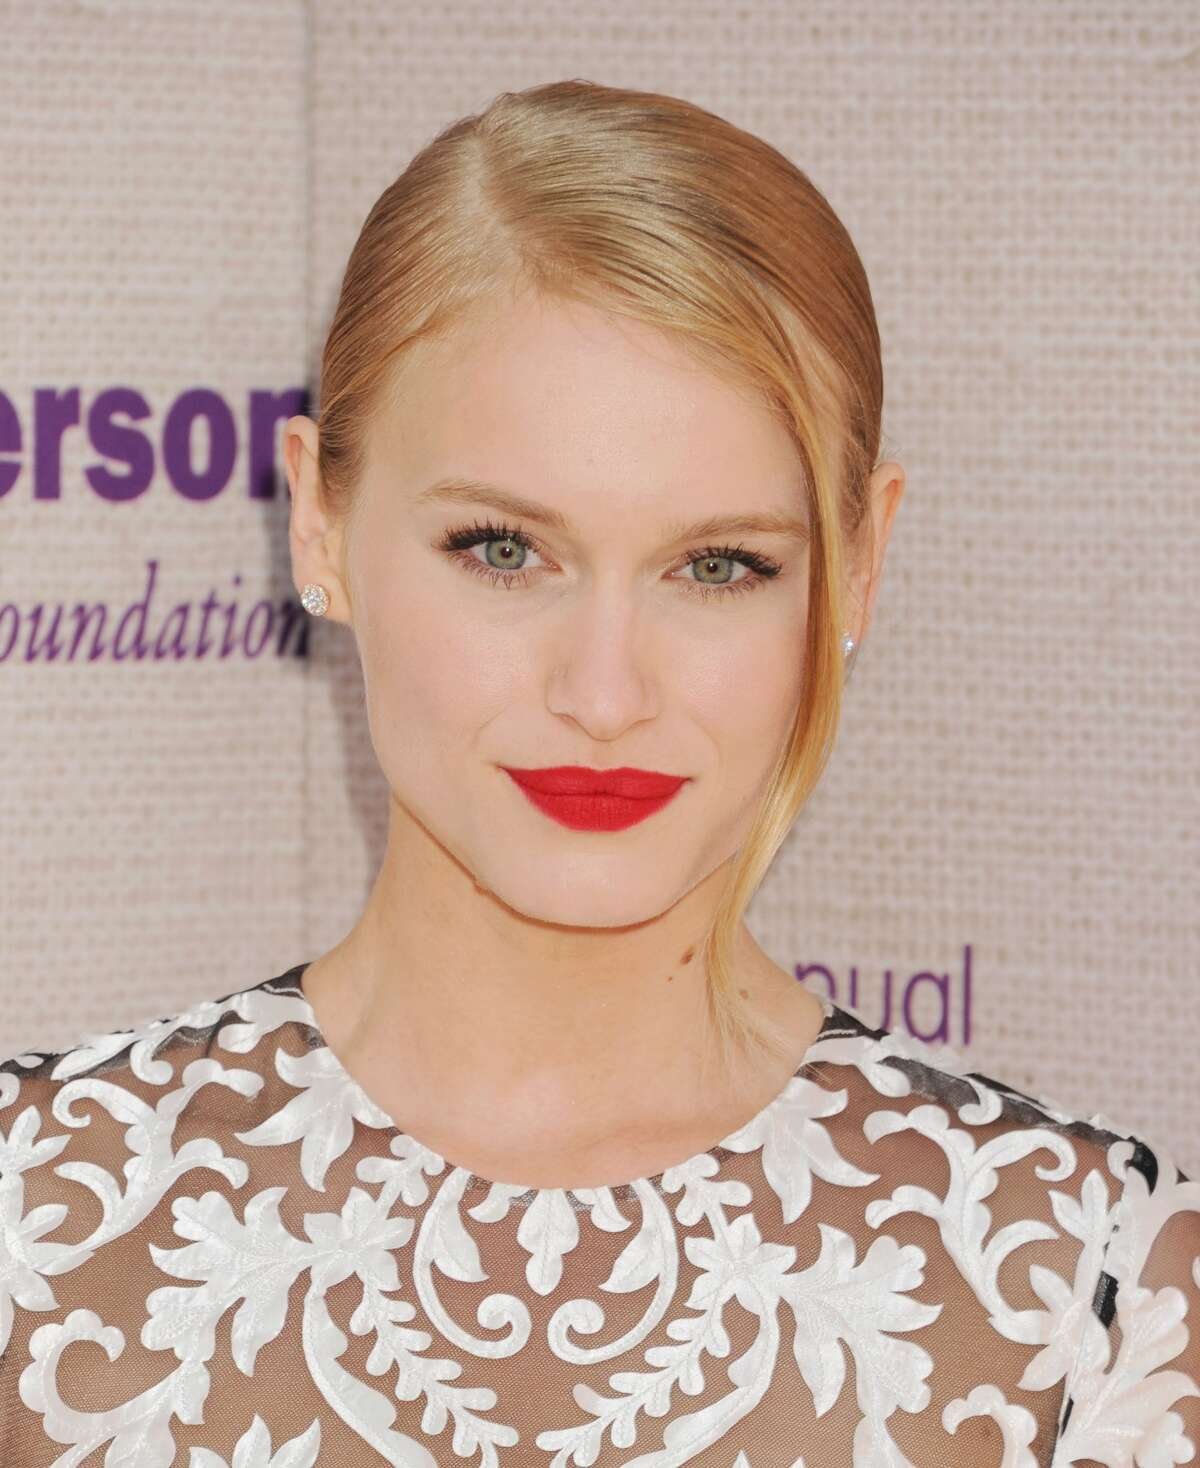 Leven RambinClaim to fame: 'True Detective 2' and 'Hunger Games' actressThe star attended the Houston School of Film and Theatre and St. Francis Episcopal Day School before moving to New York.Take a look at other famous people who called Houston home at one point.